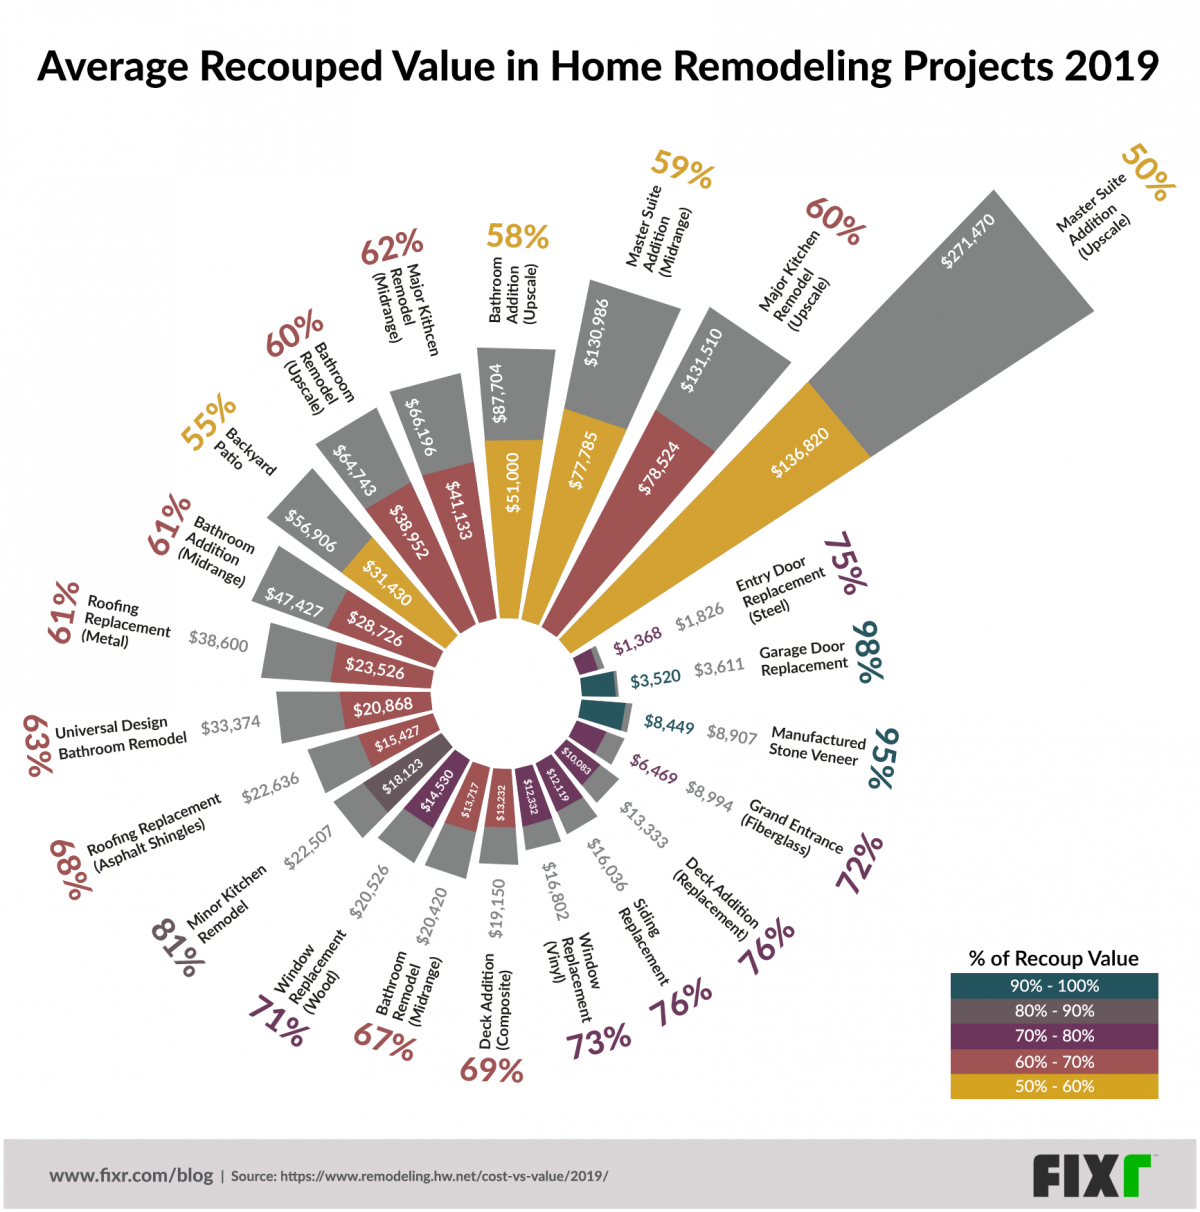 Average Recouped Value in Home Remodeling Projects